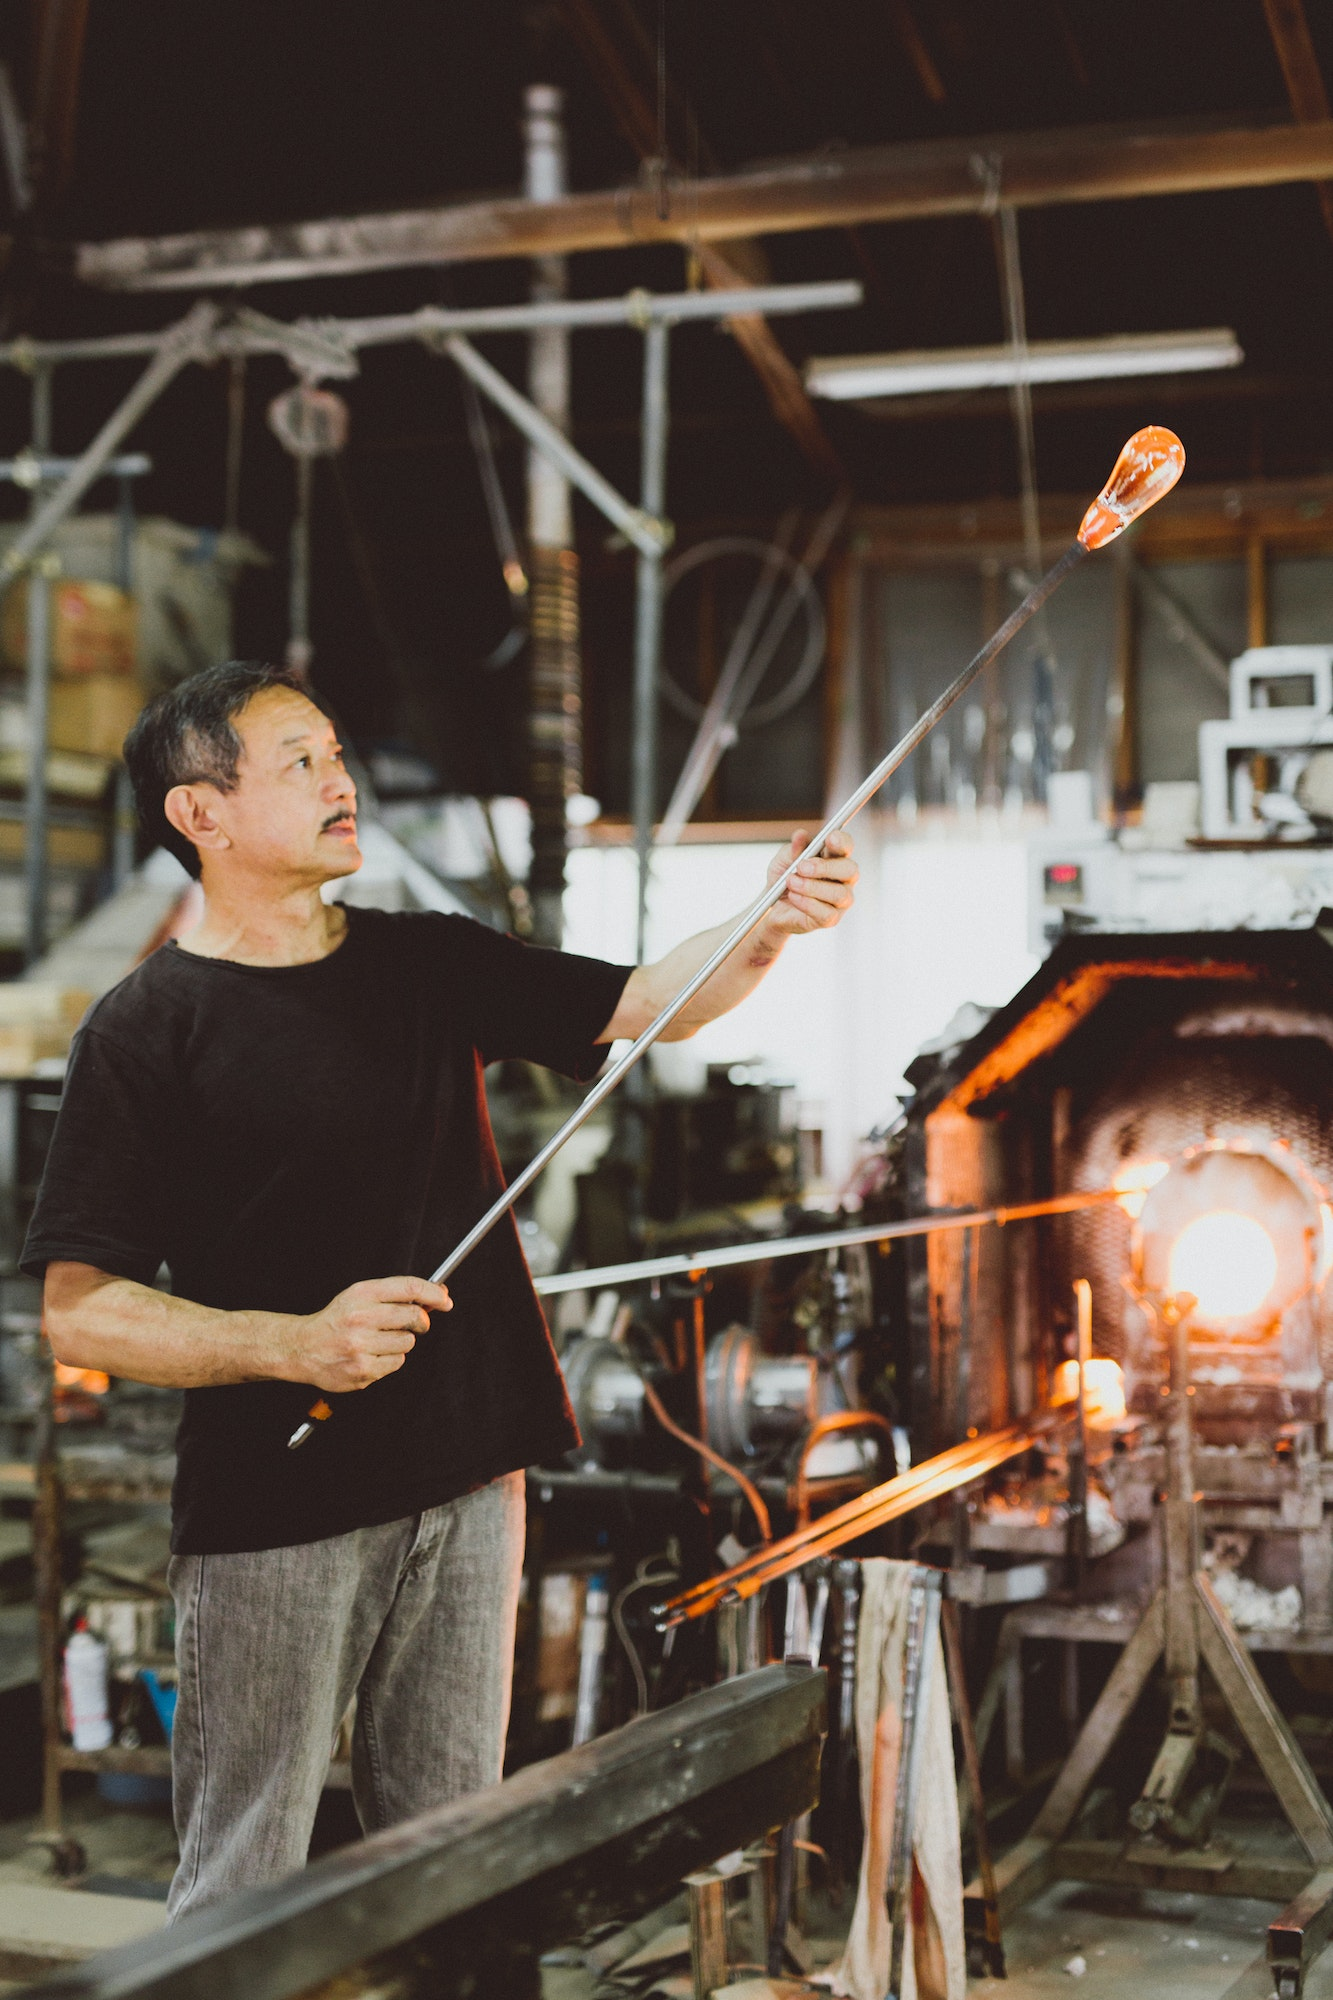 About an hour's drive from central Kyoto, Naoya Arakawa practices the traditional craft of handblown glass-making.